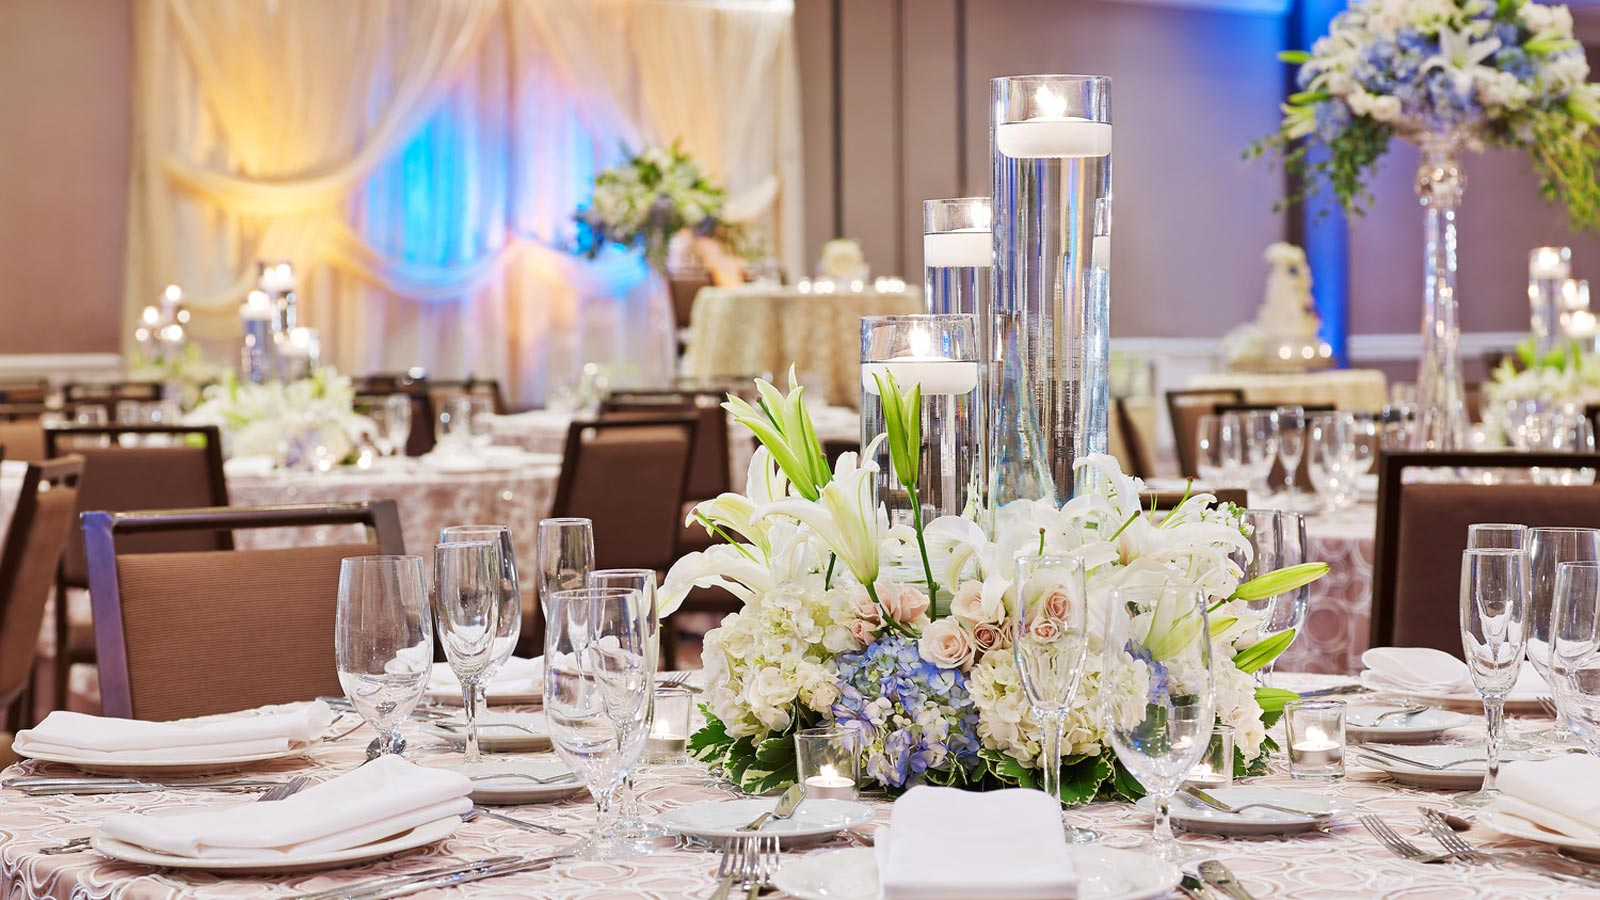 Atlanta wedding venues the westin atlanta perimeter north youll enjoy peace of mind planning your special day with the help of our expert wedding specialist from awe inspiring dcor to personalized catering junglespirit Image collections